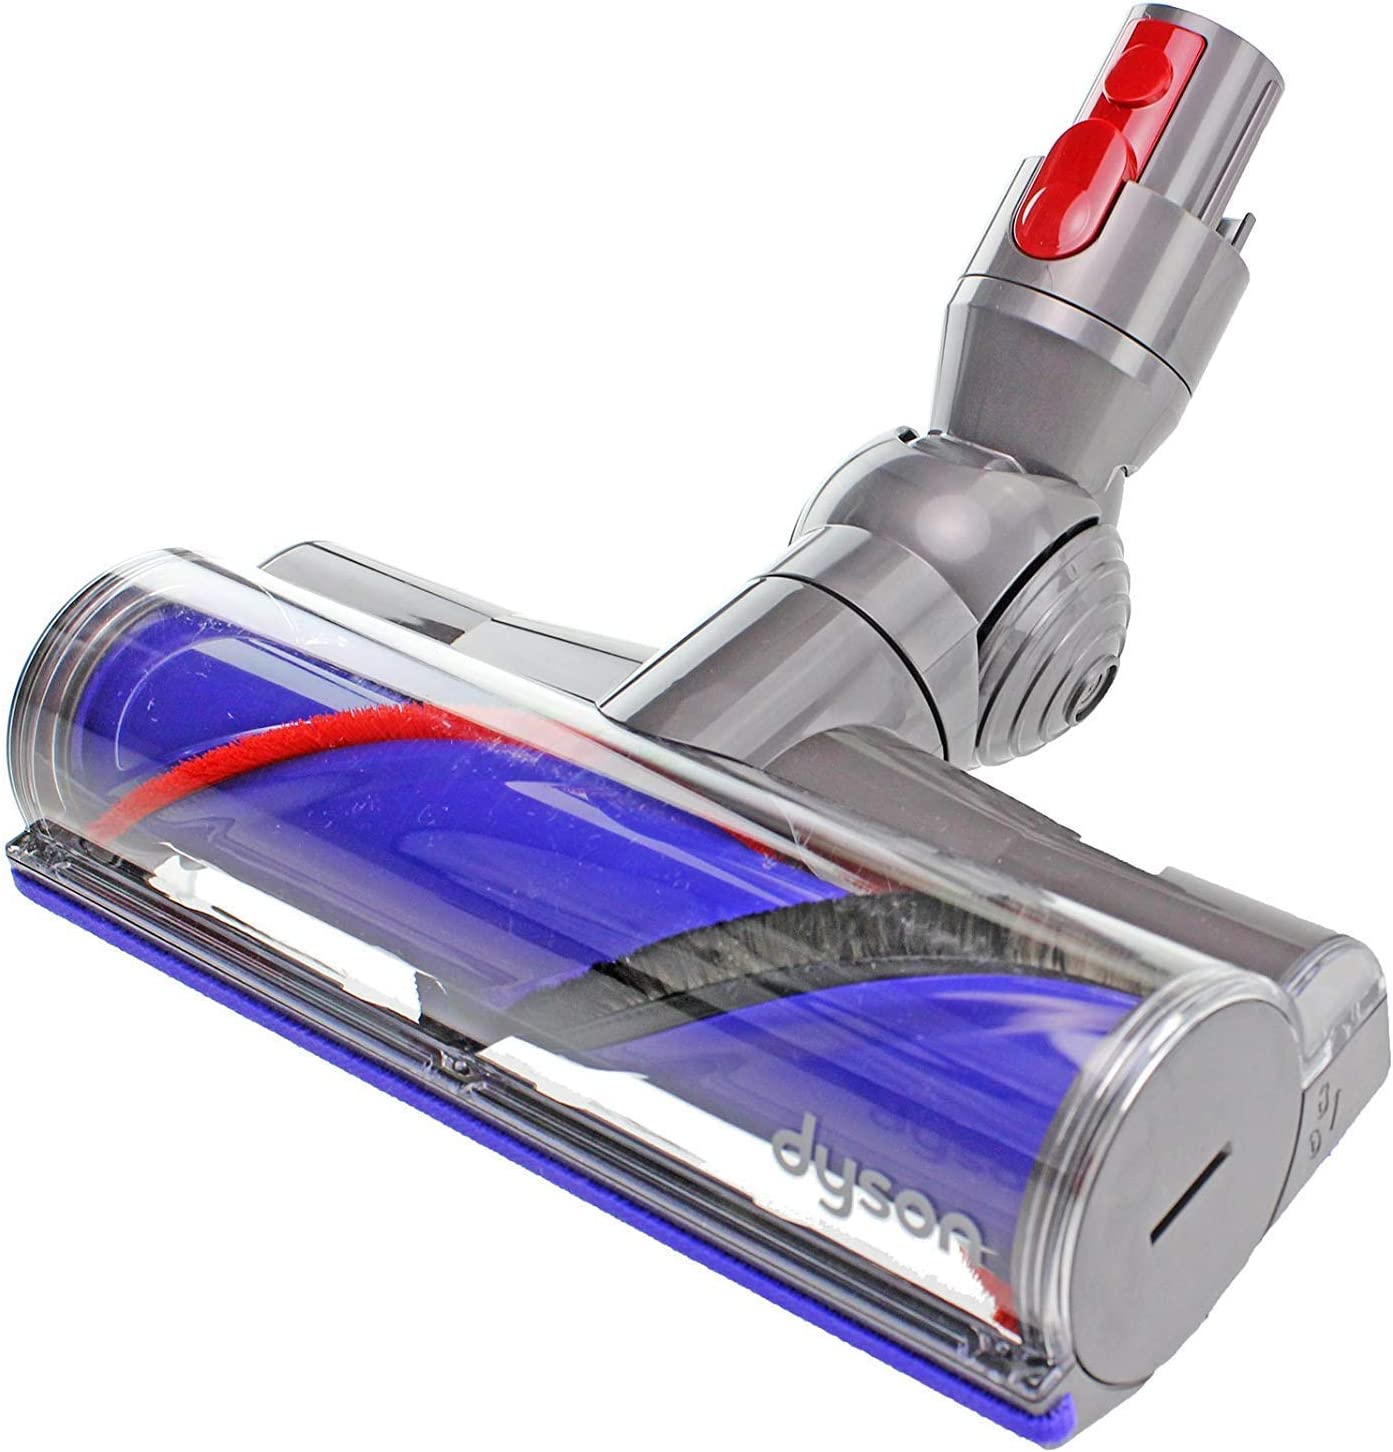 Dyson Quick-release Motorhead cleaner for Dyson V8 vacuums